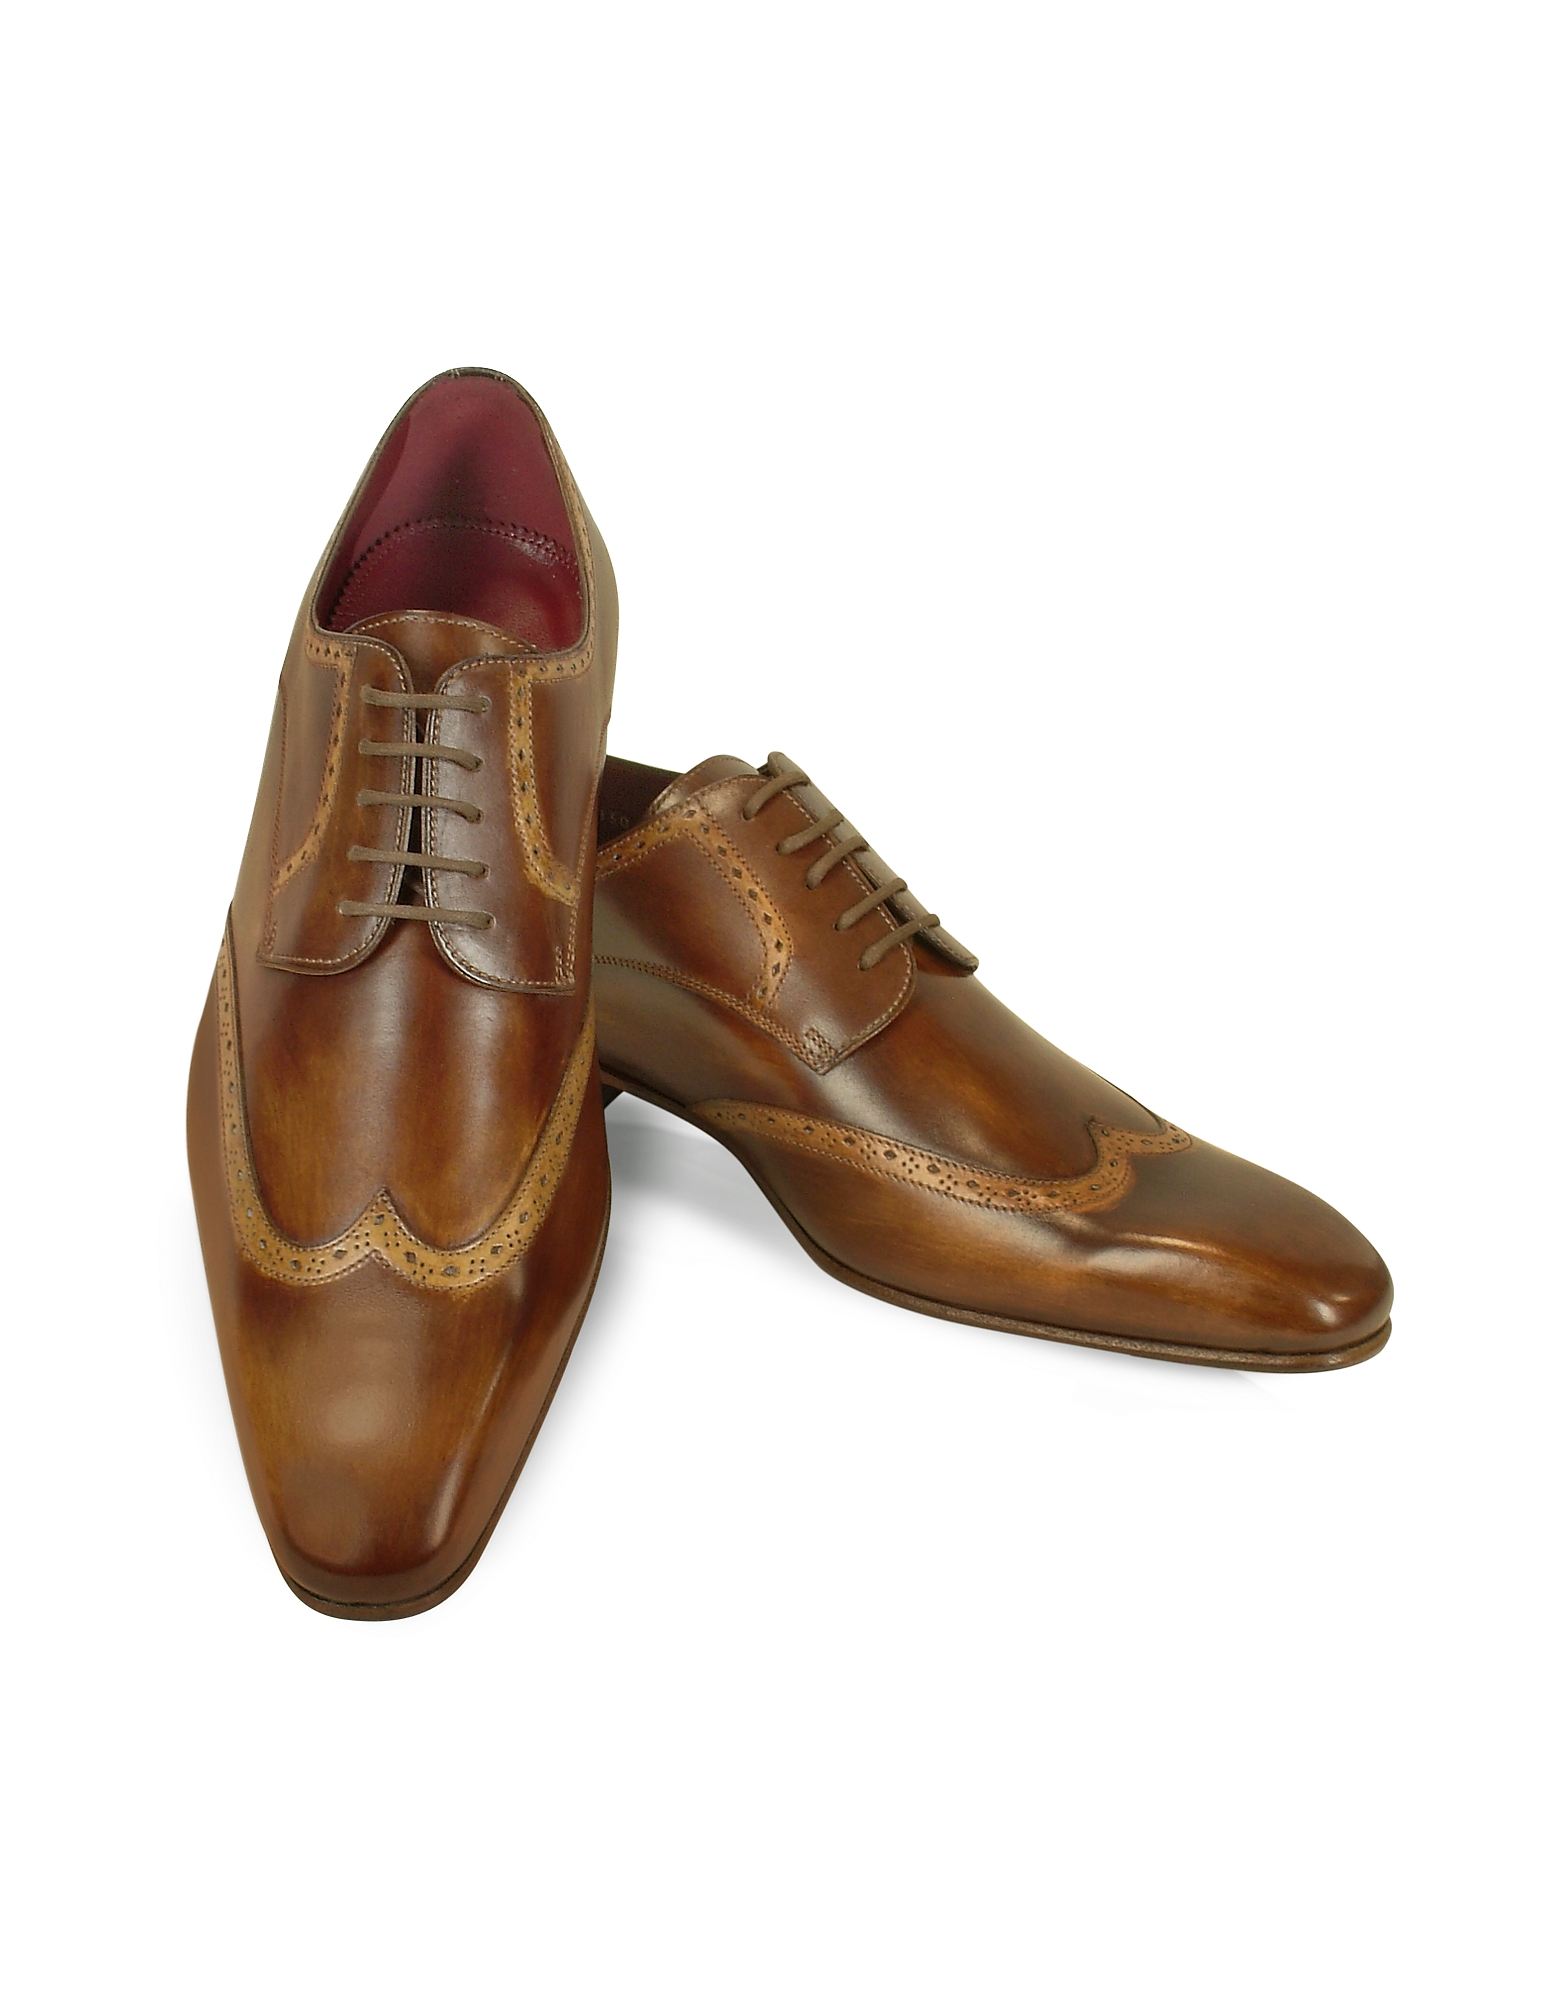 Fratelli Borgioli Shoes, Handmade Light Brown Italian Leather Wingtip Dress Shoes